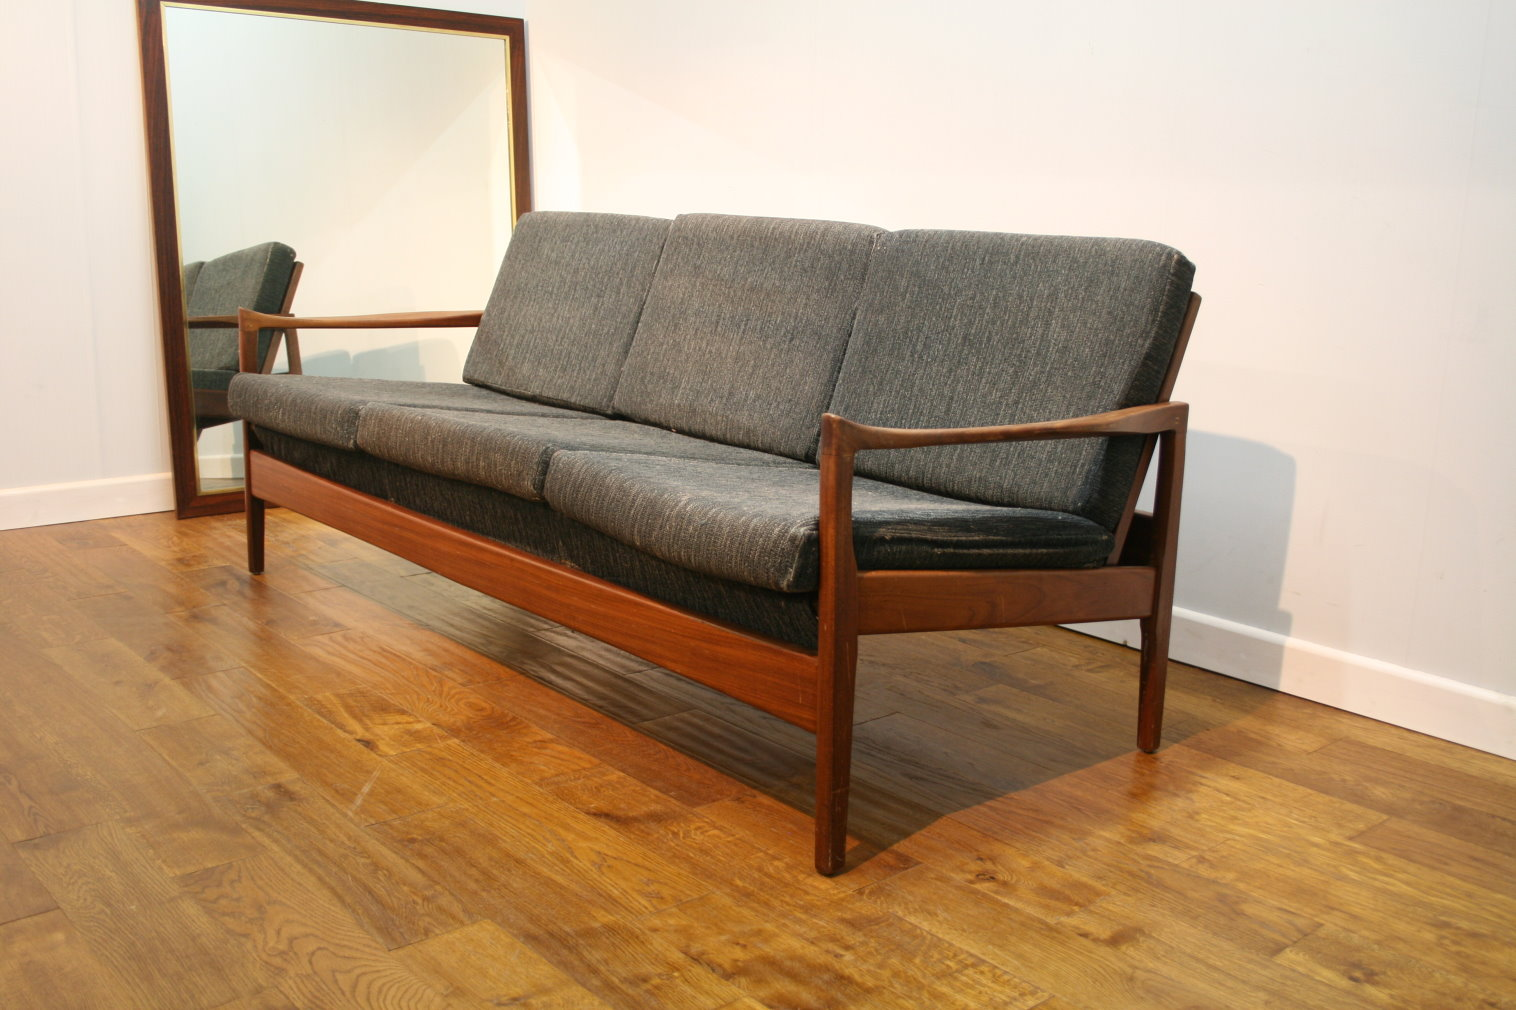 60s Greaves and Thomas style teak sofa for re upholstery  : vintage teak sofa 4 from www.vintageretro.co.uk size 1516 x 1010 jpeg 234kB